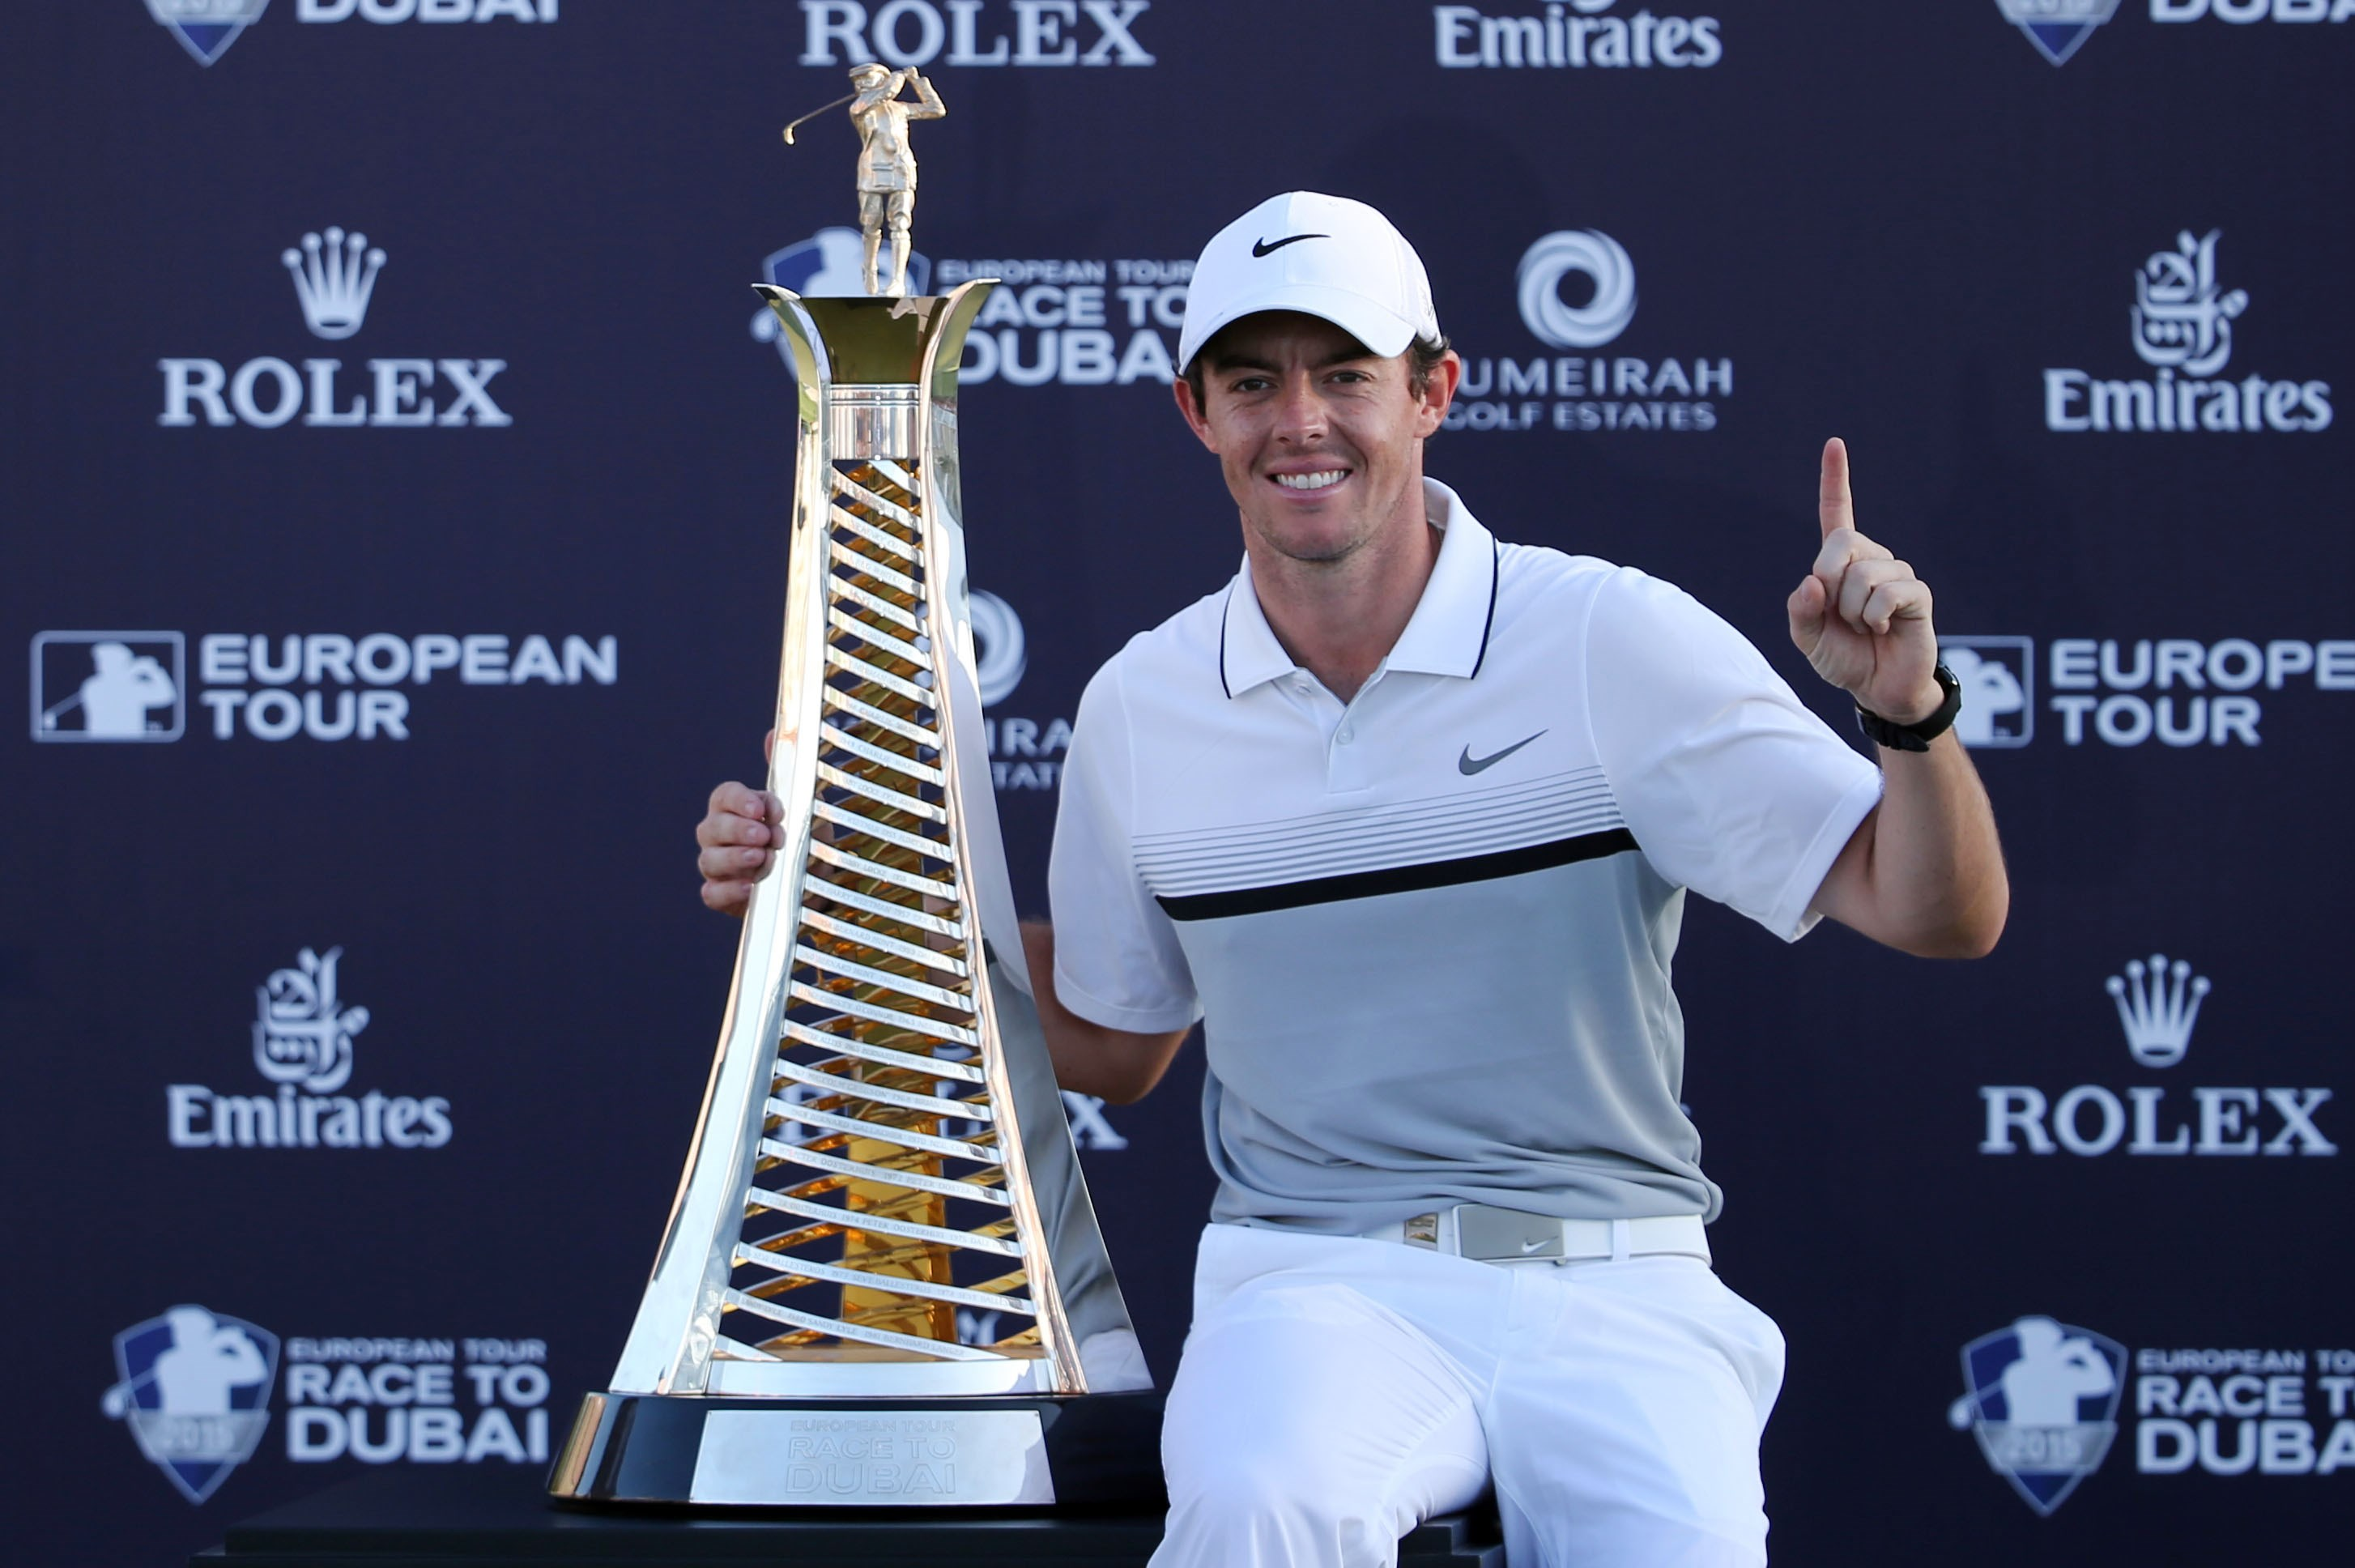 Rory McIlroy of Northern Ireland poses with the Race to Dubai trophy after he won the final round of DP World Tour Championship golf tournament in Dubai, United Arab Emirates, Sunday, Nov. 22, 2015. (AP Photo/Kamran Jebreili)